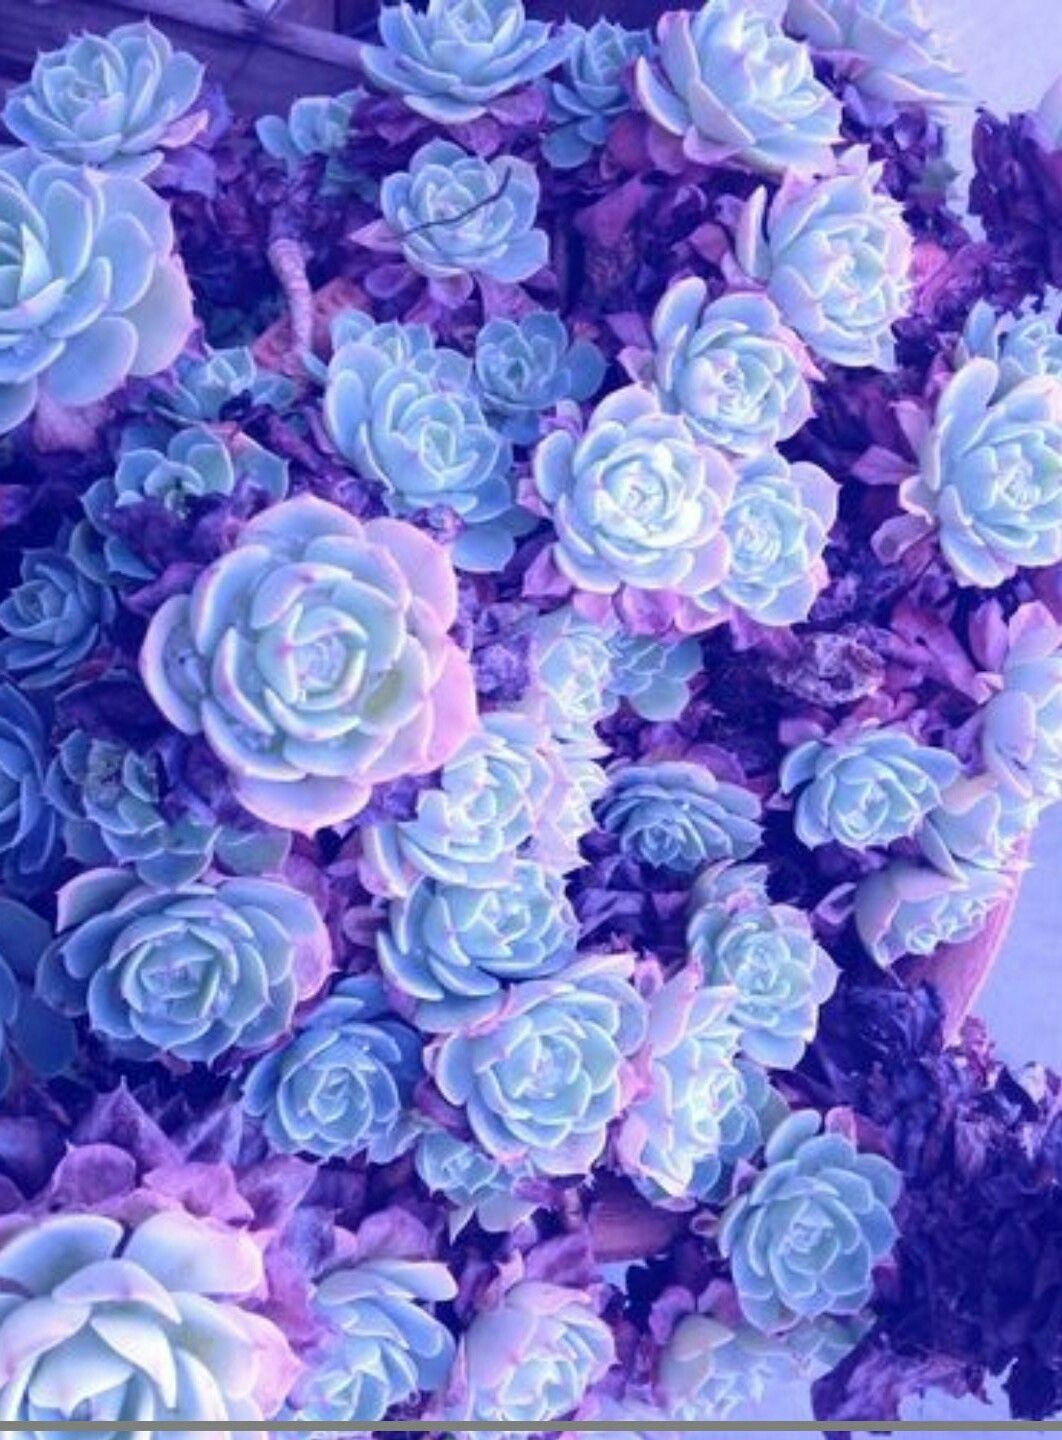 Wallpaper Pastel Purple Aesthetic Flowers Be inspired by the beauty of nature with this gorgeous collection of flower wallpapers and images. wallpaper pastel purple aesthetic flowers